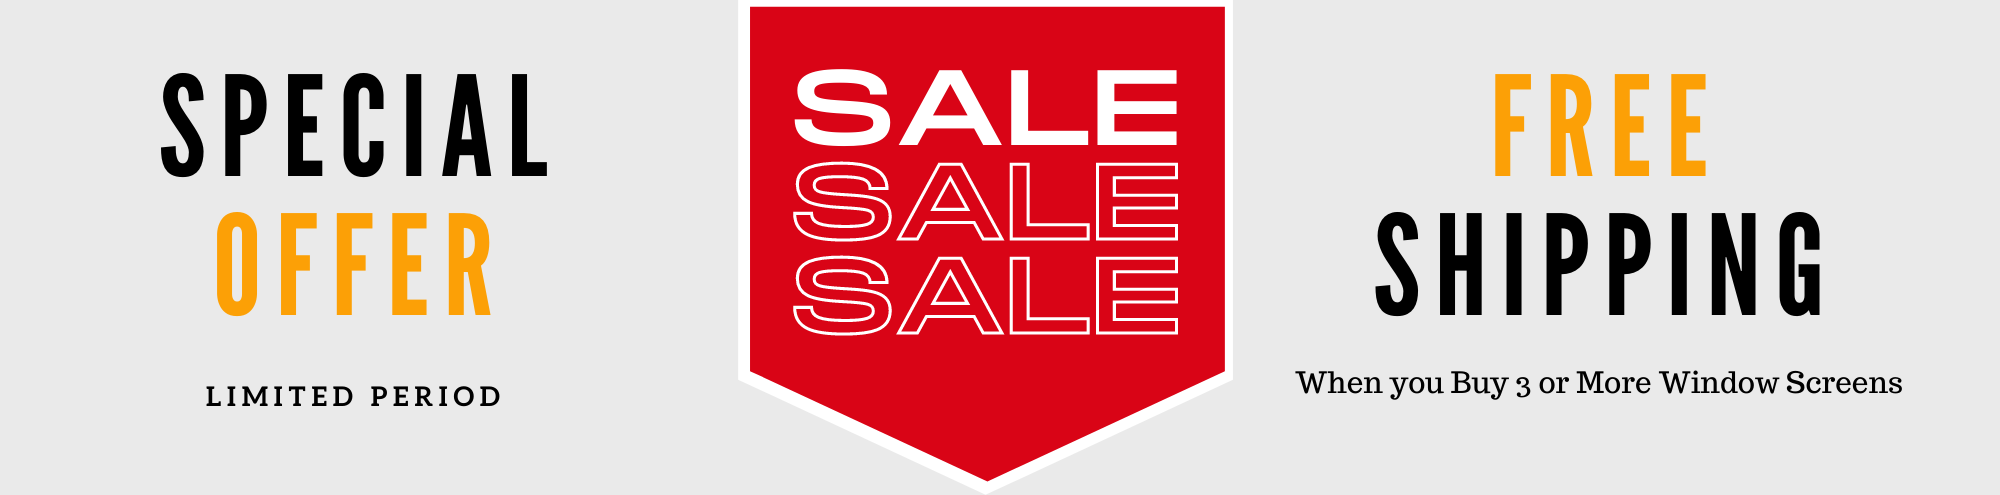 sale-banner-windows-screen.png